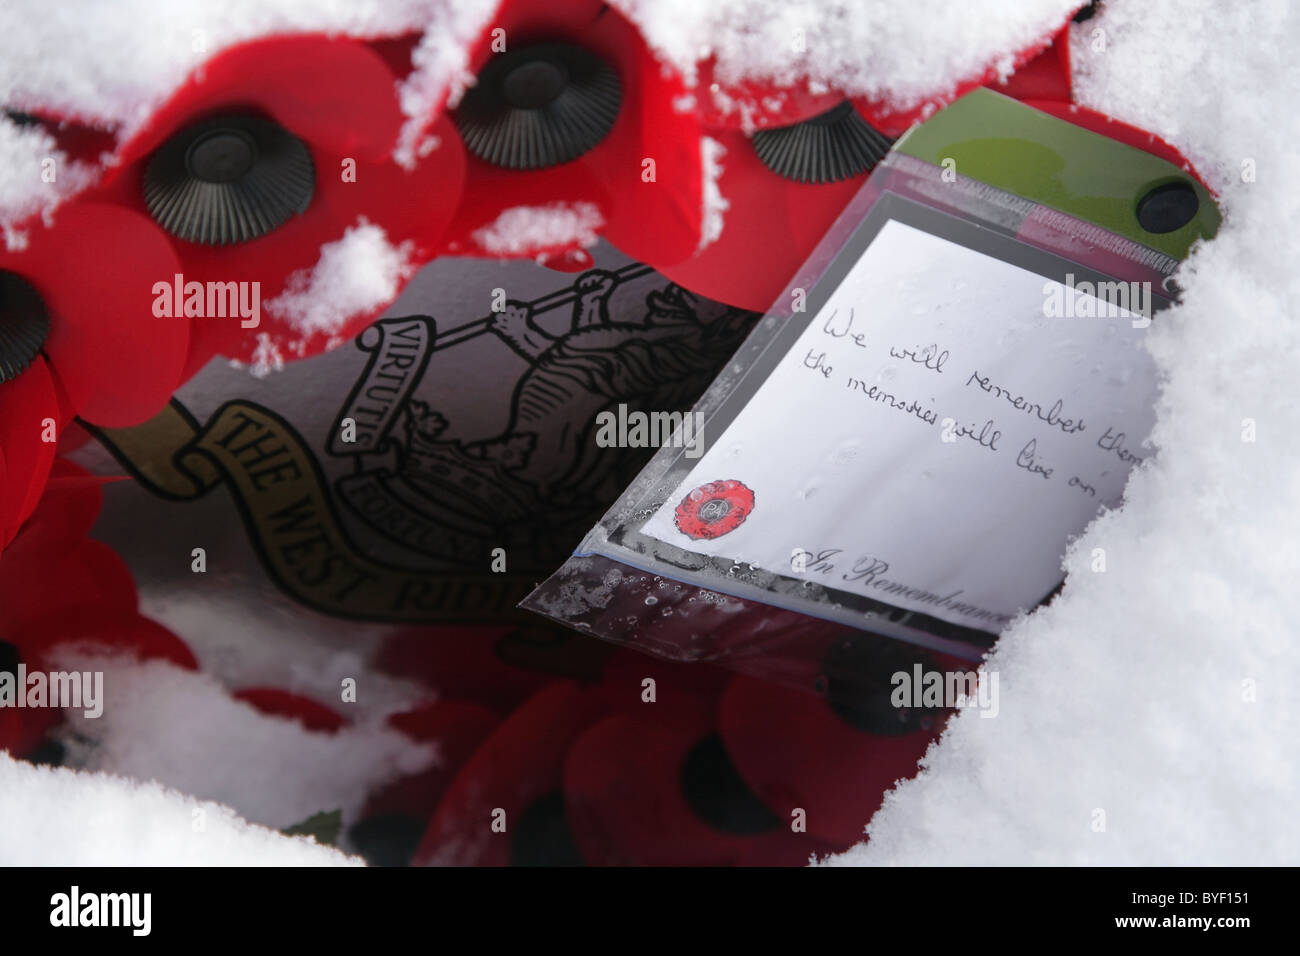 Poppy wreath in snow with card saying 'We Will Remember Them. The Memories Will Live On' - Stock Image